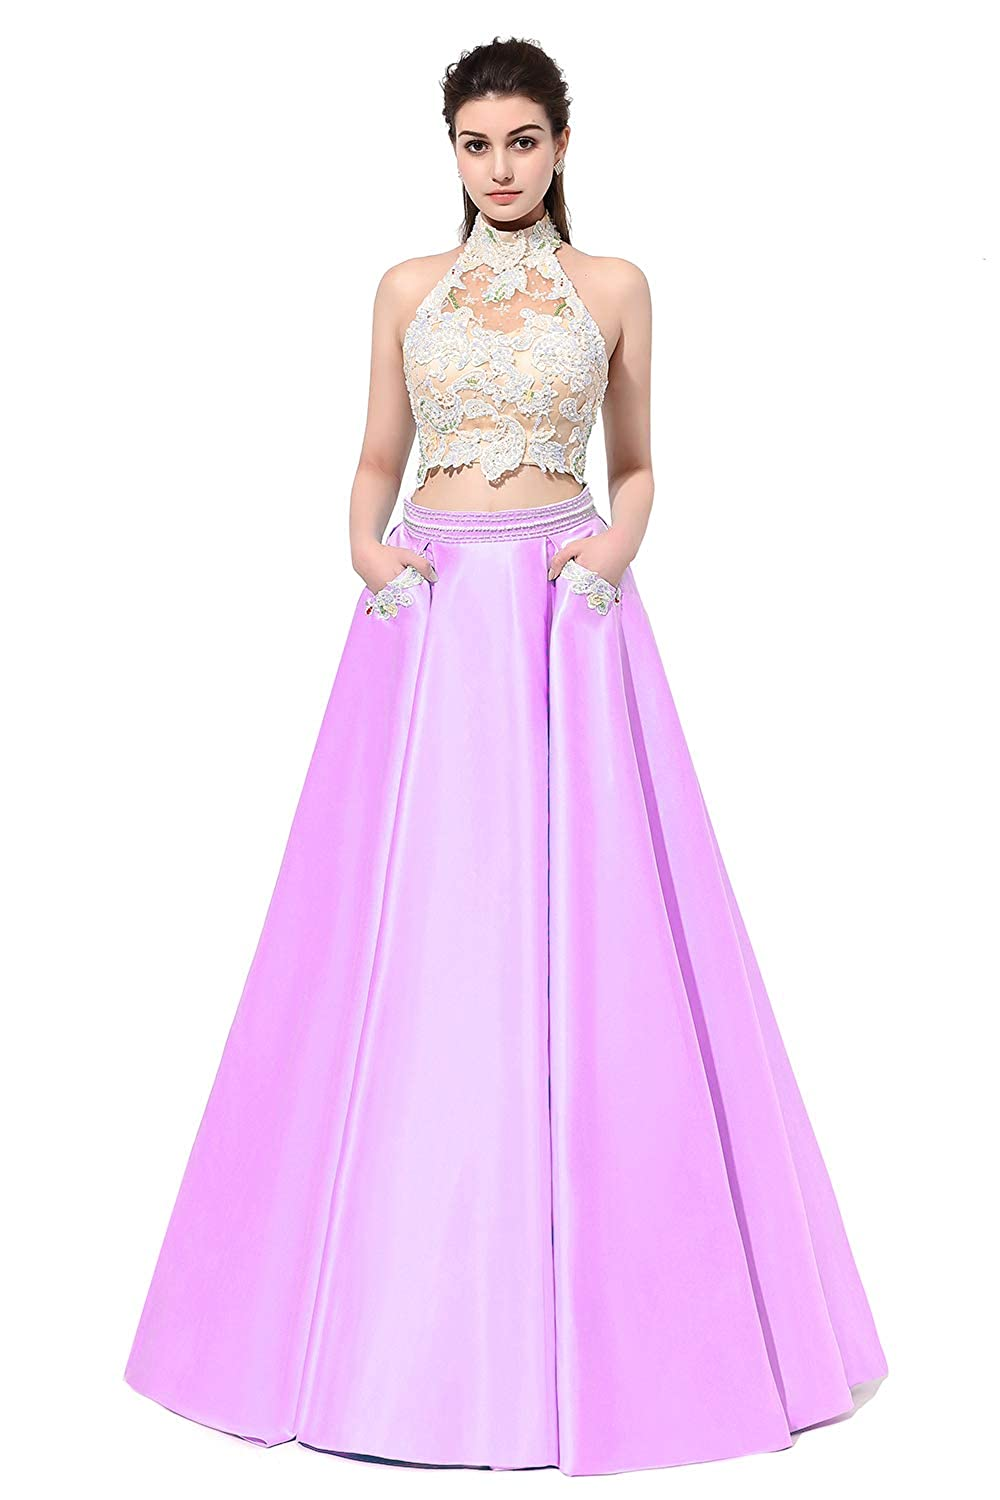 Lavender SDRESS Women's Beaded Lace Appliques 2 Piece Prom Homecoming Dress Pockets